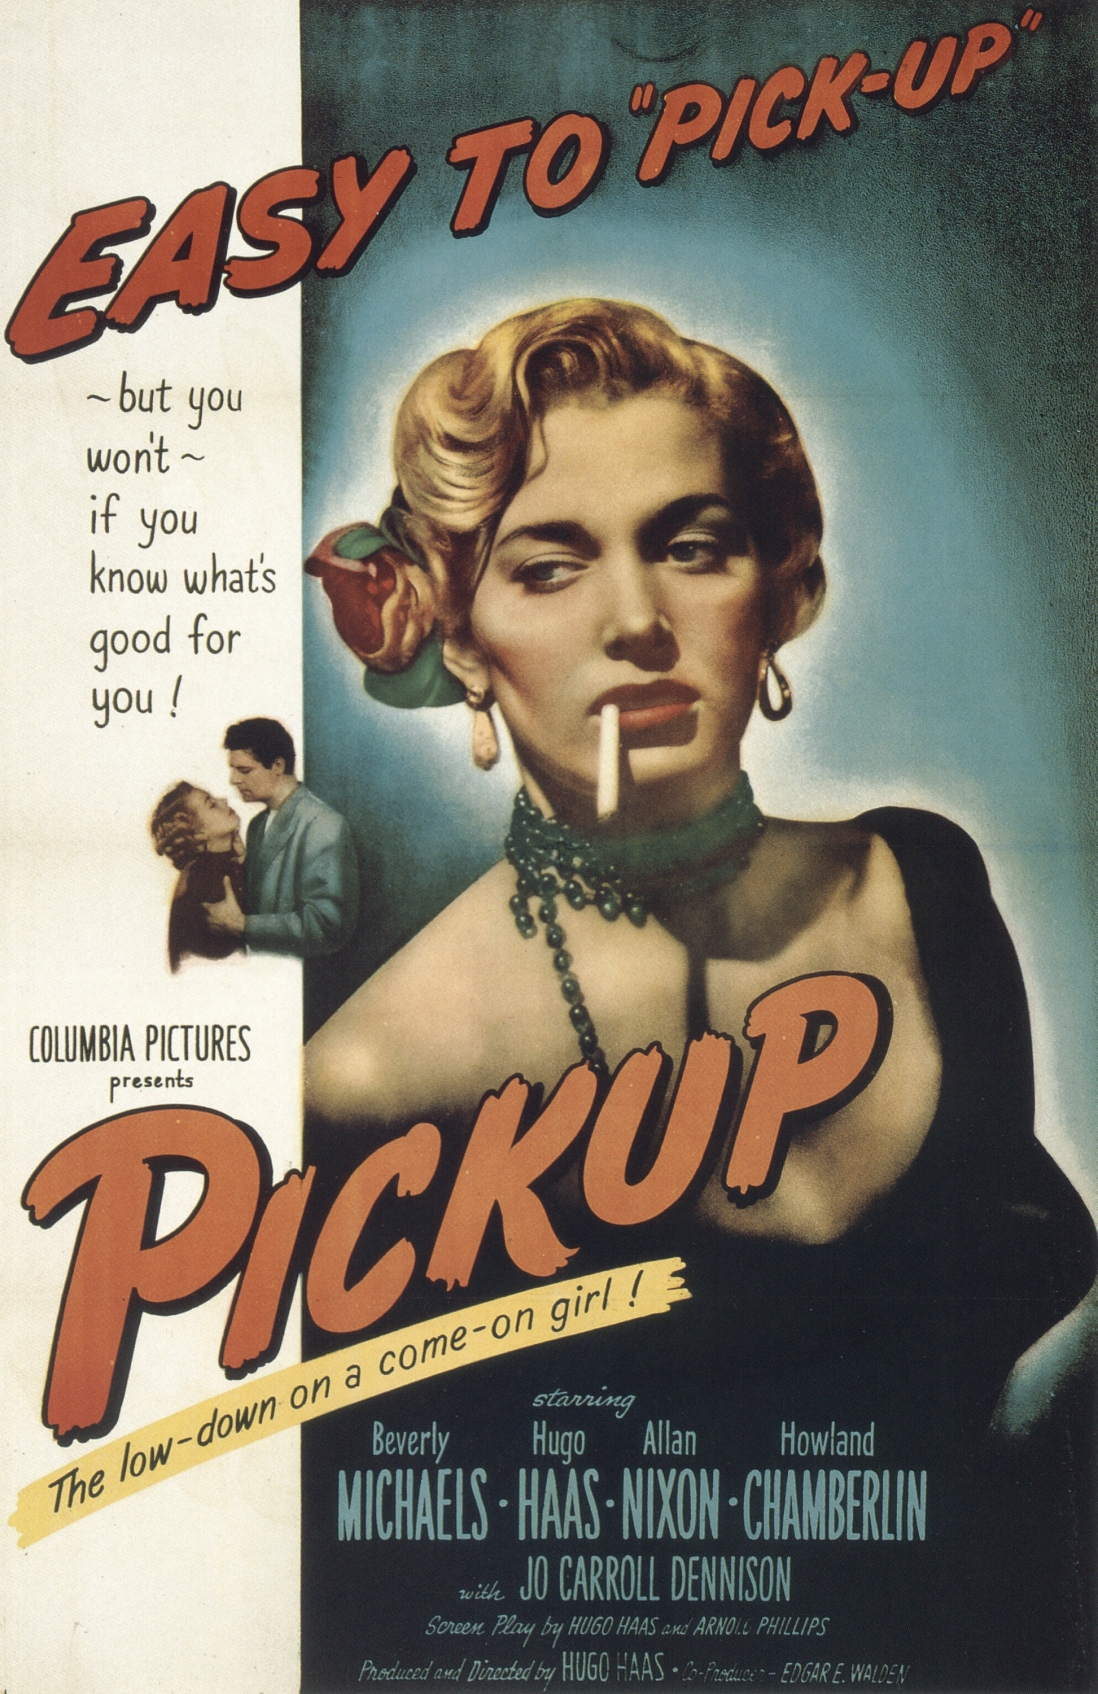 Movie poster showing woman smoking a cigarette. text reads: Easy to pick-up.